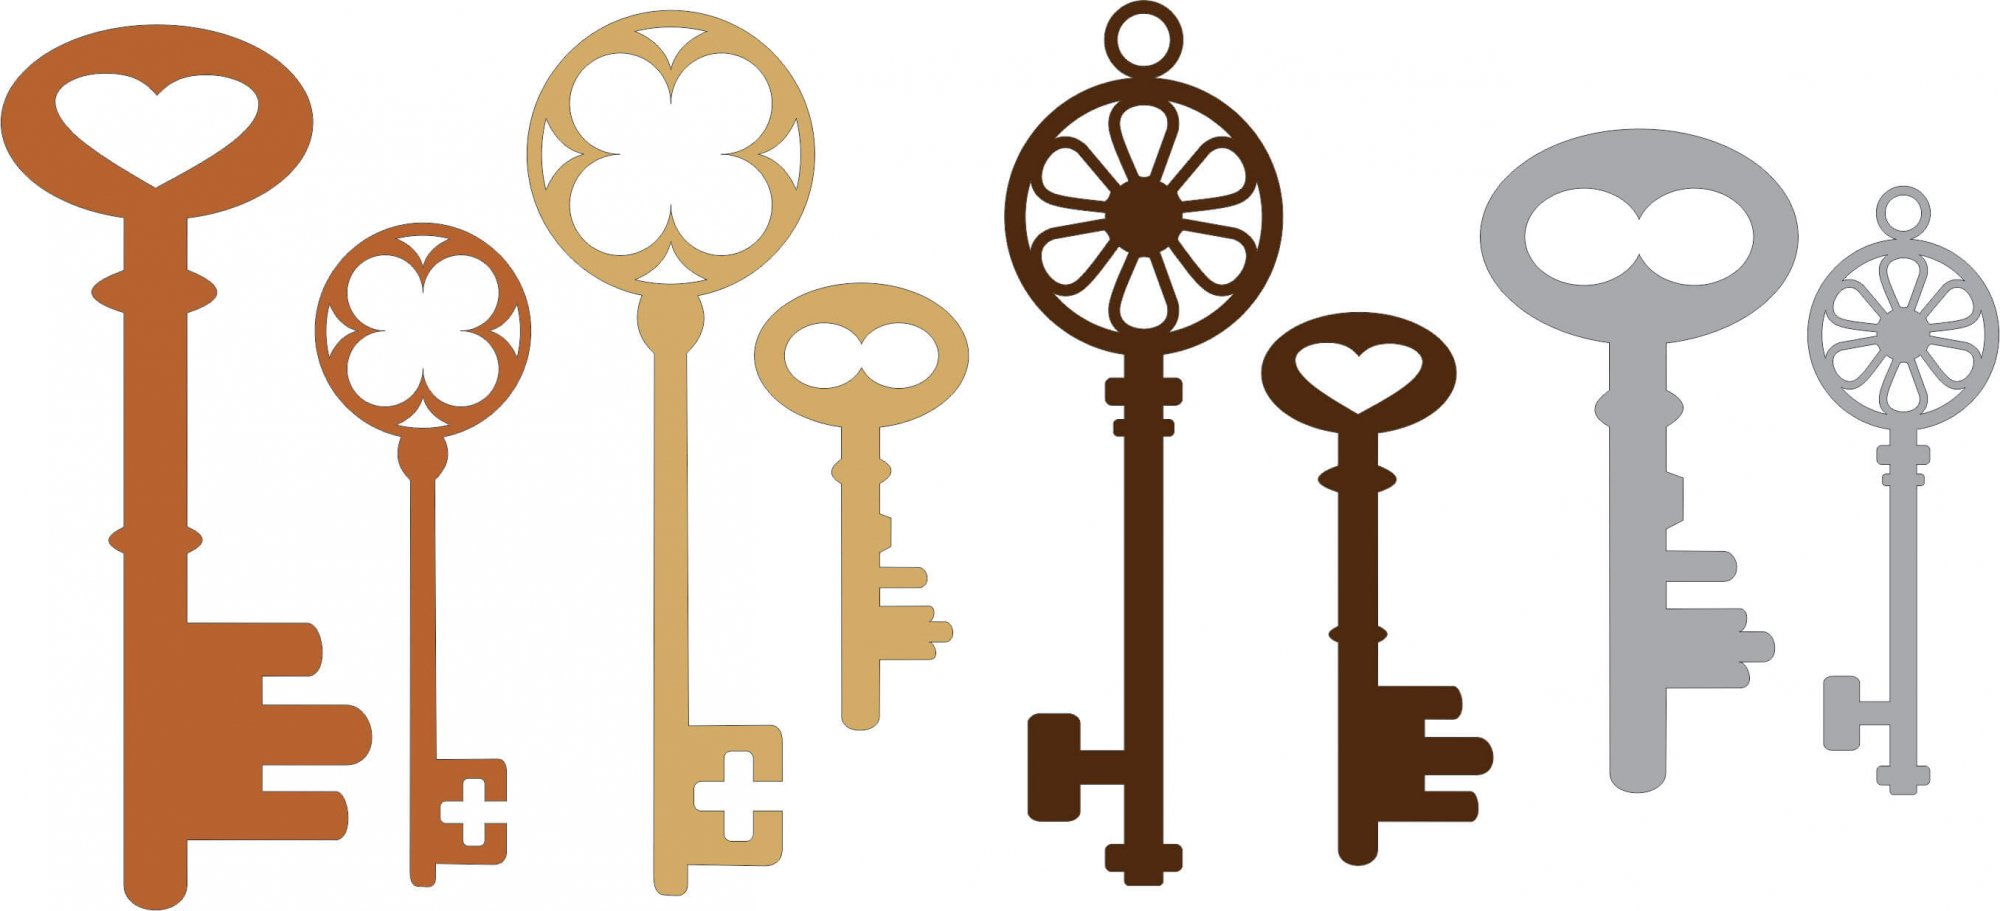 Keys (Set of 8)